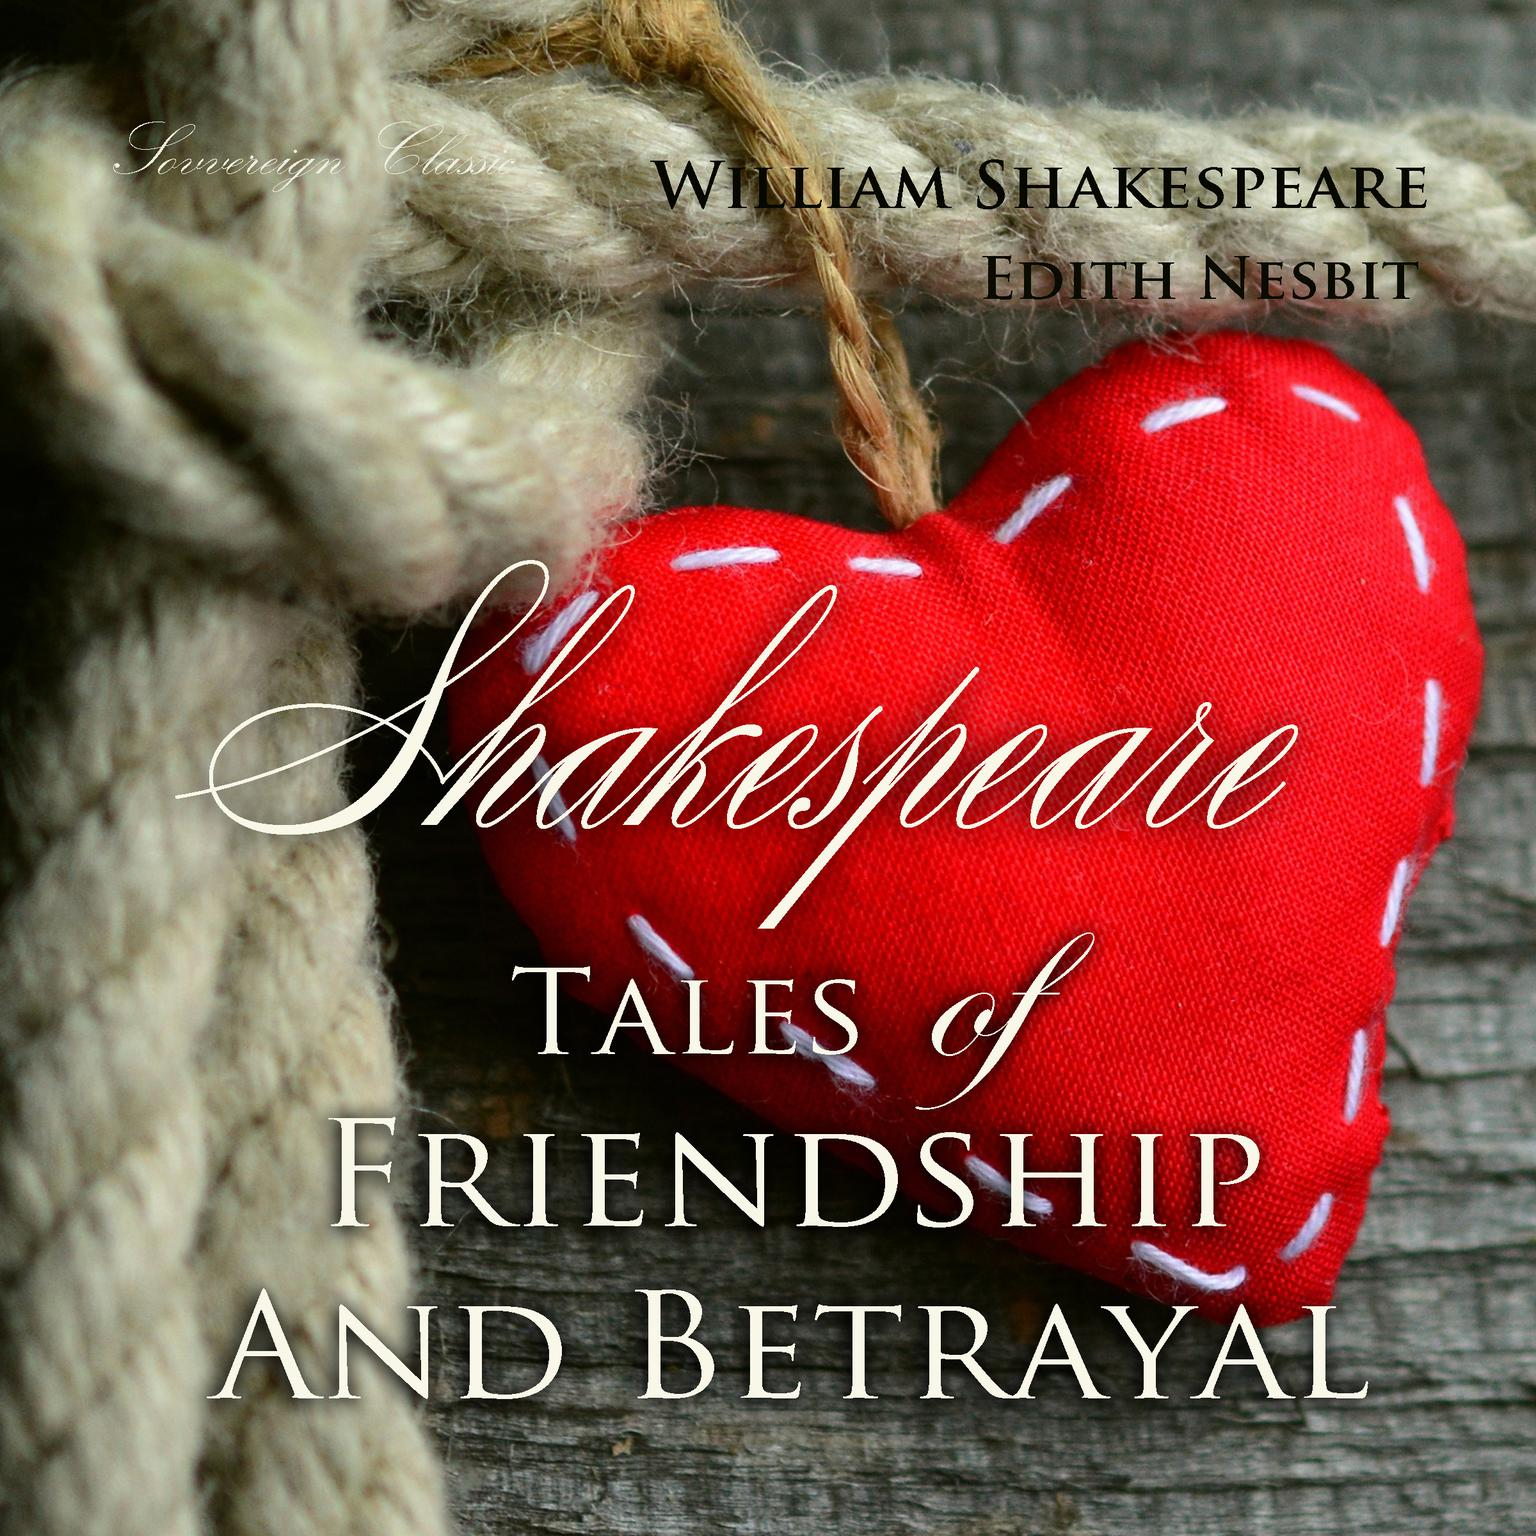 Printable Shakespeare Tales of Friendship and Betrayal Audiobook Cover Art